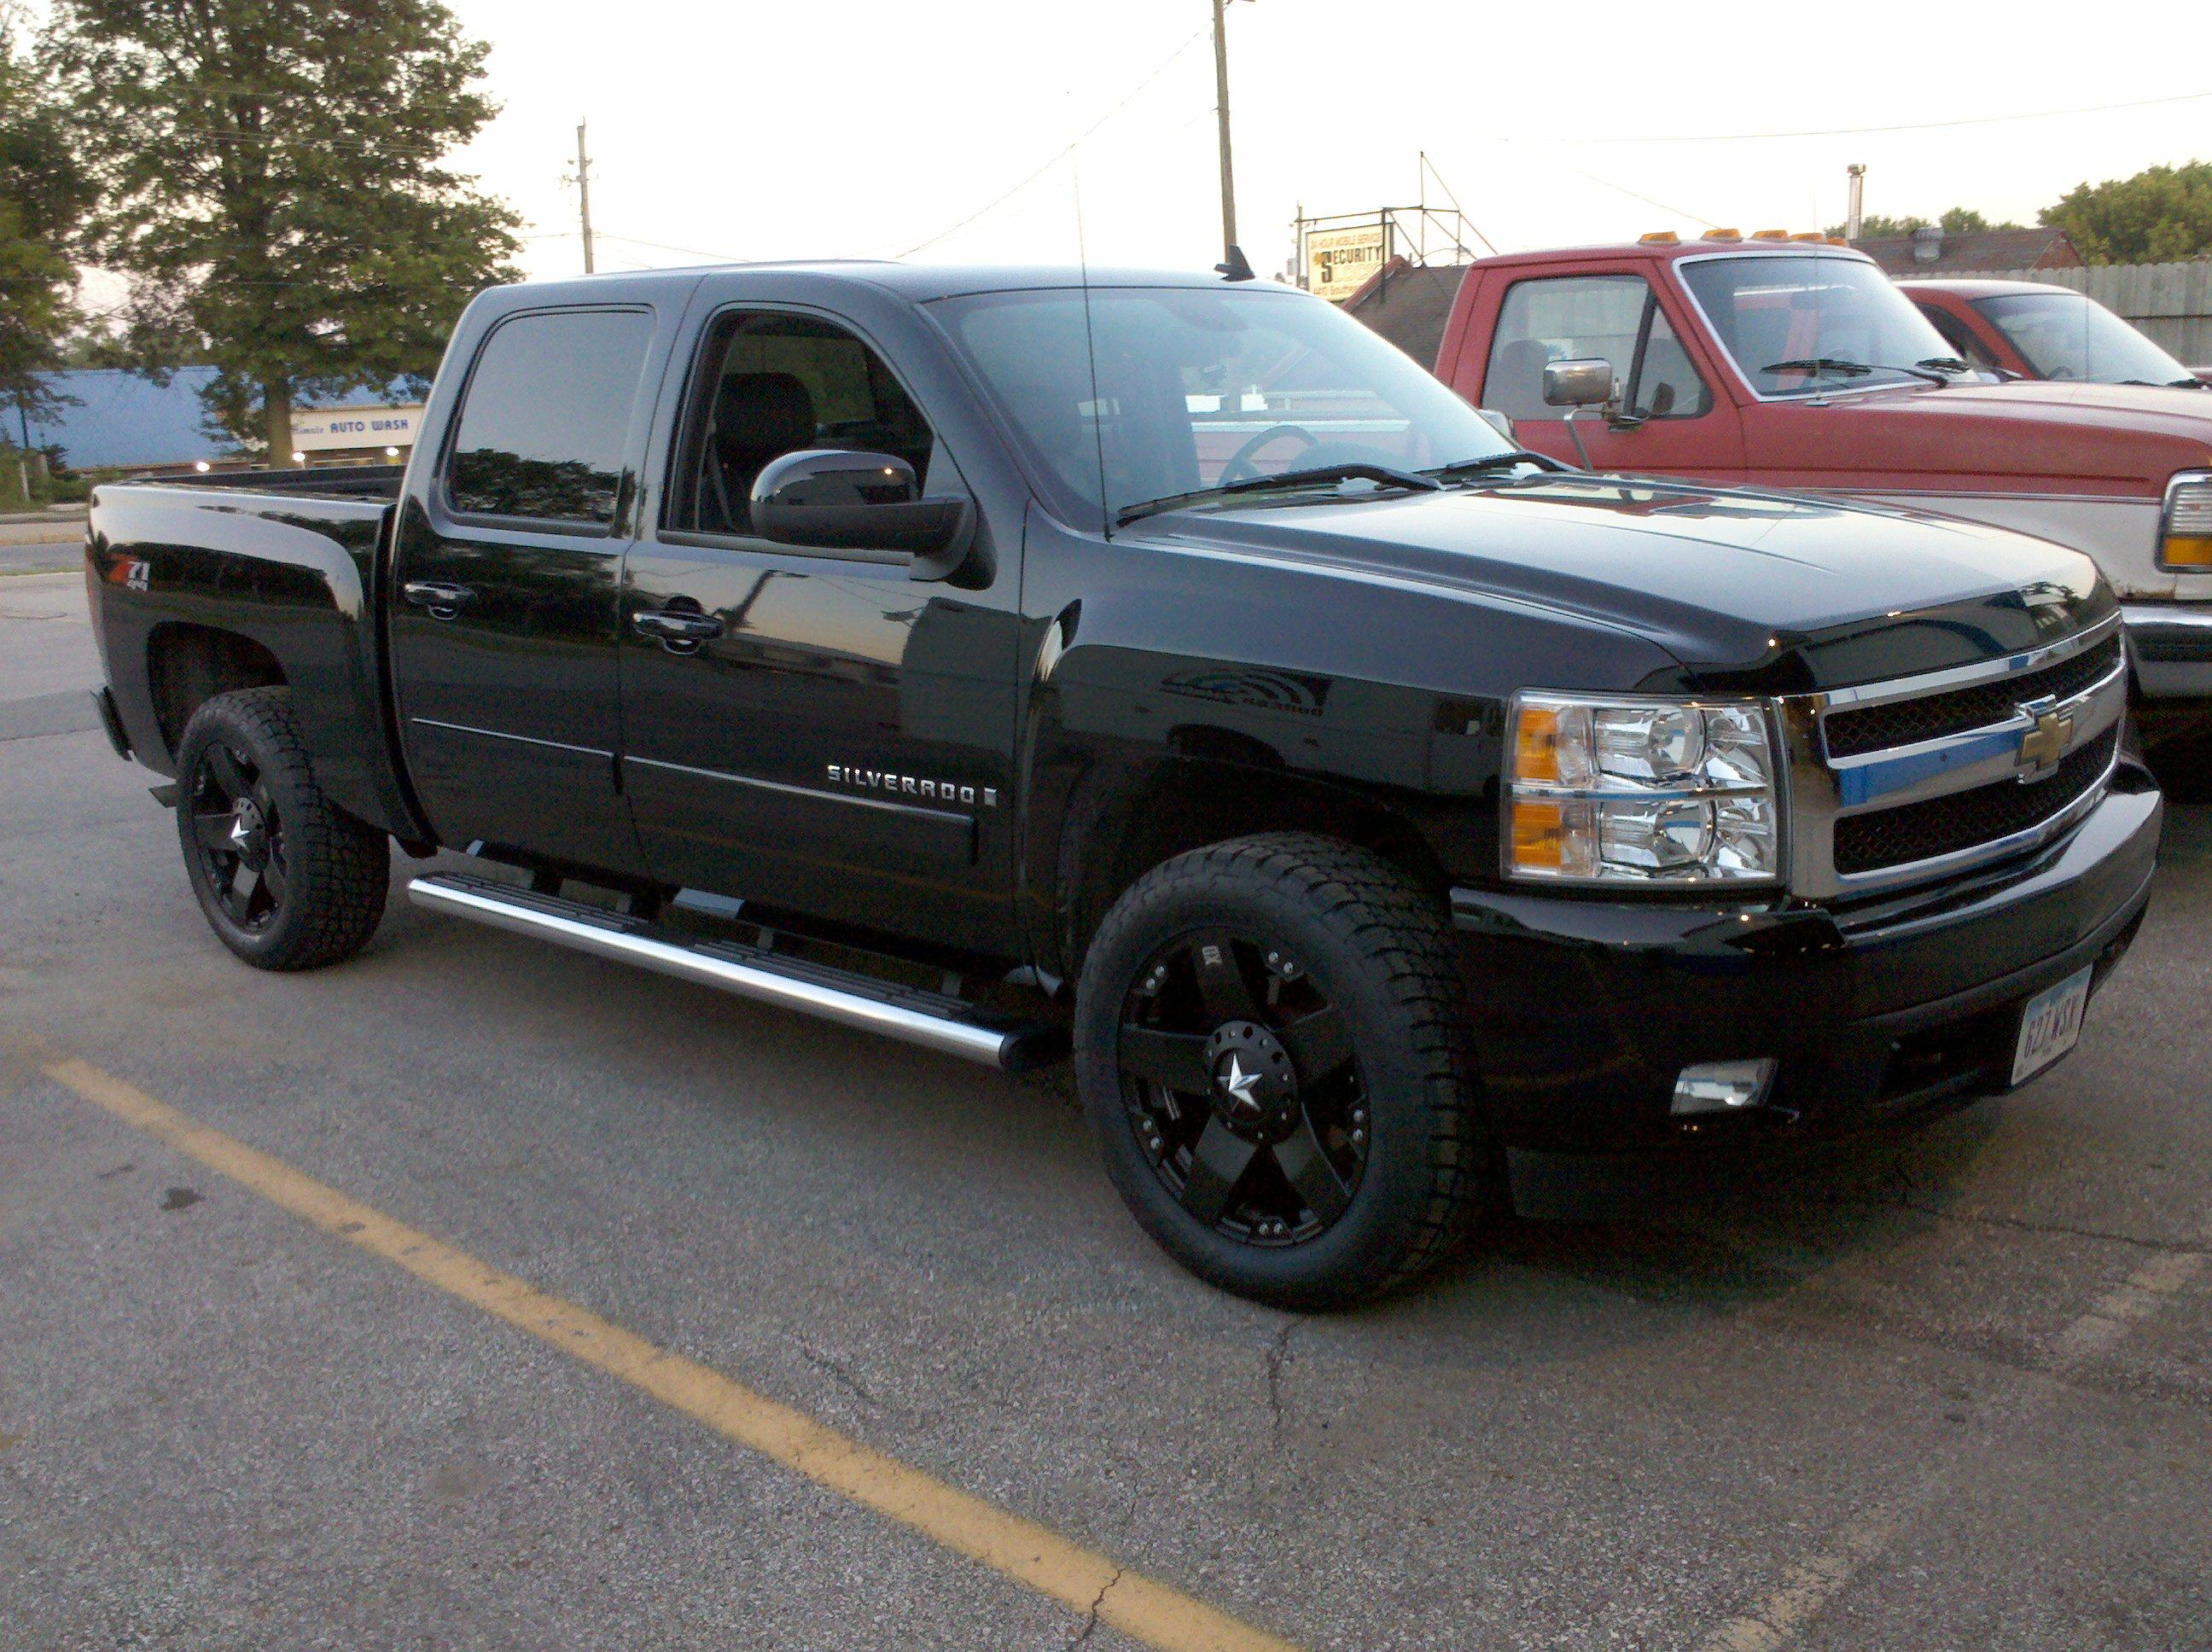 thechadwick06 2008 chevrolet silverado 1500 crew cab specs photos modification info at cardomain. Black Bedroom Furniture Sets. Home Design Ideas